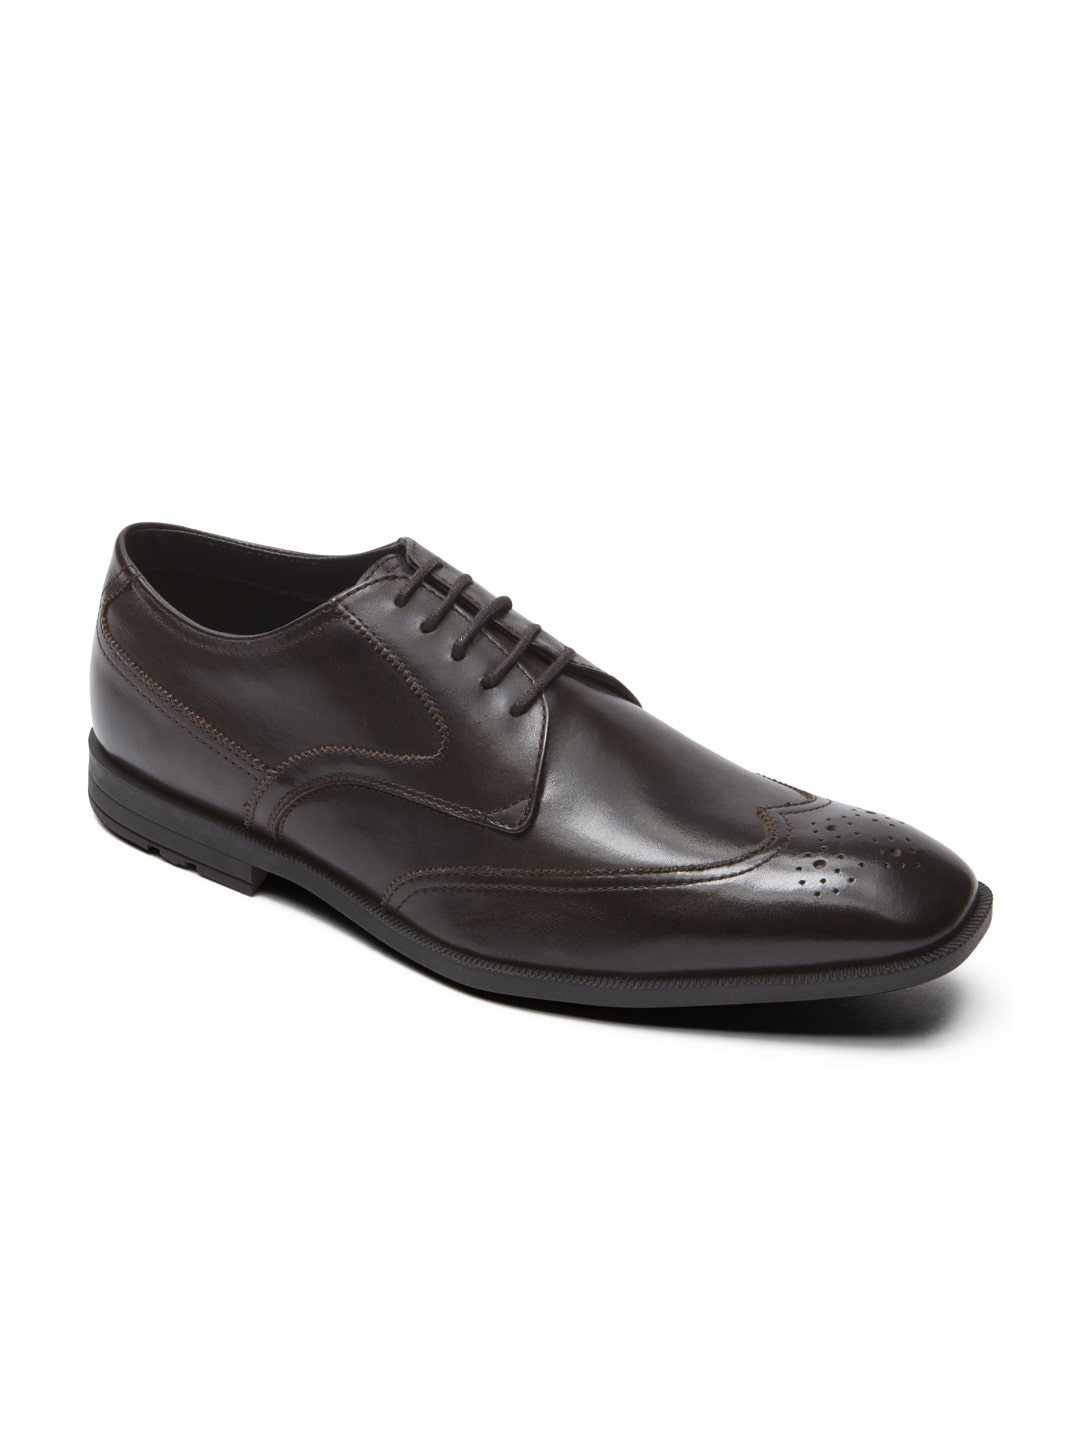 rockport brown leather formal shoes